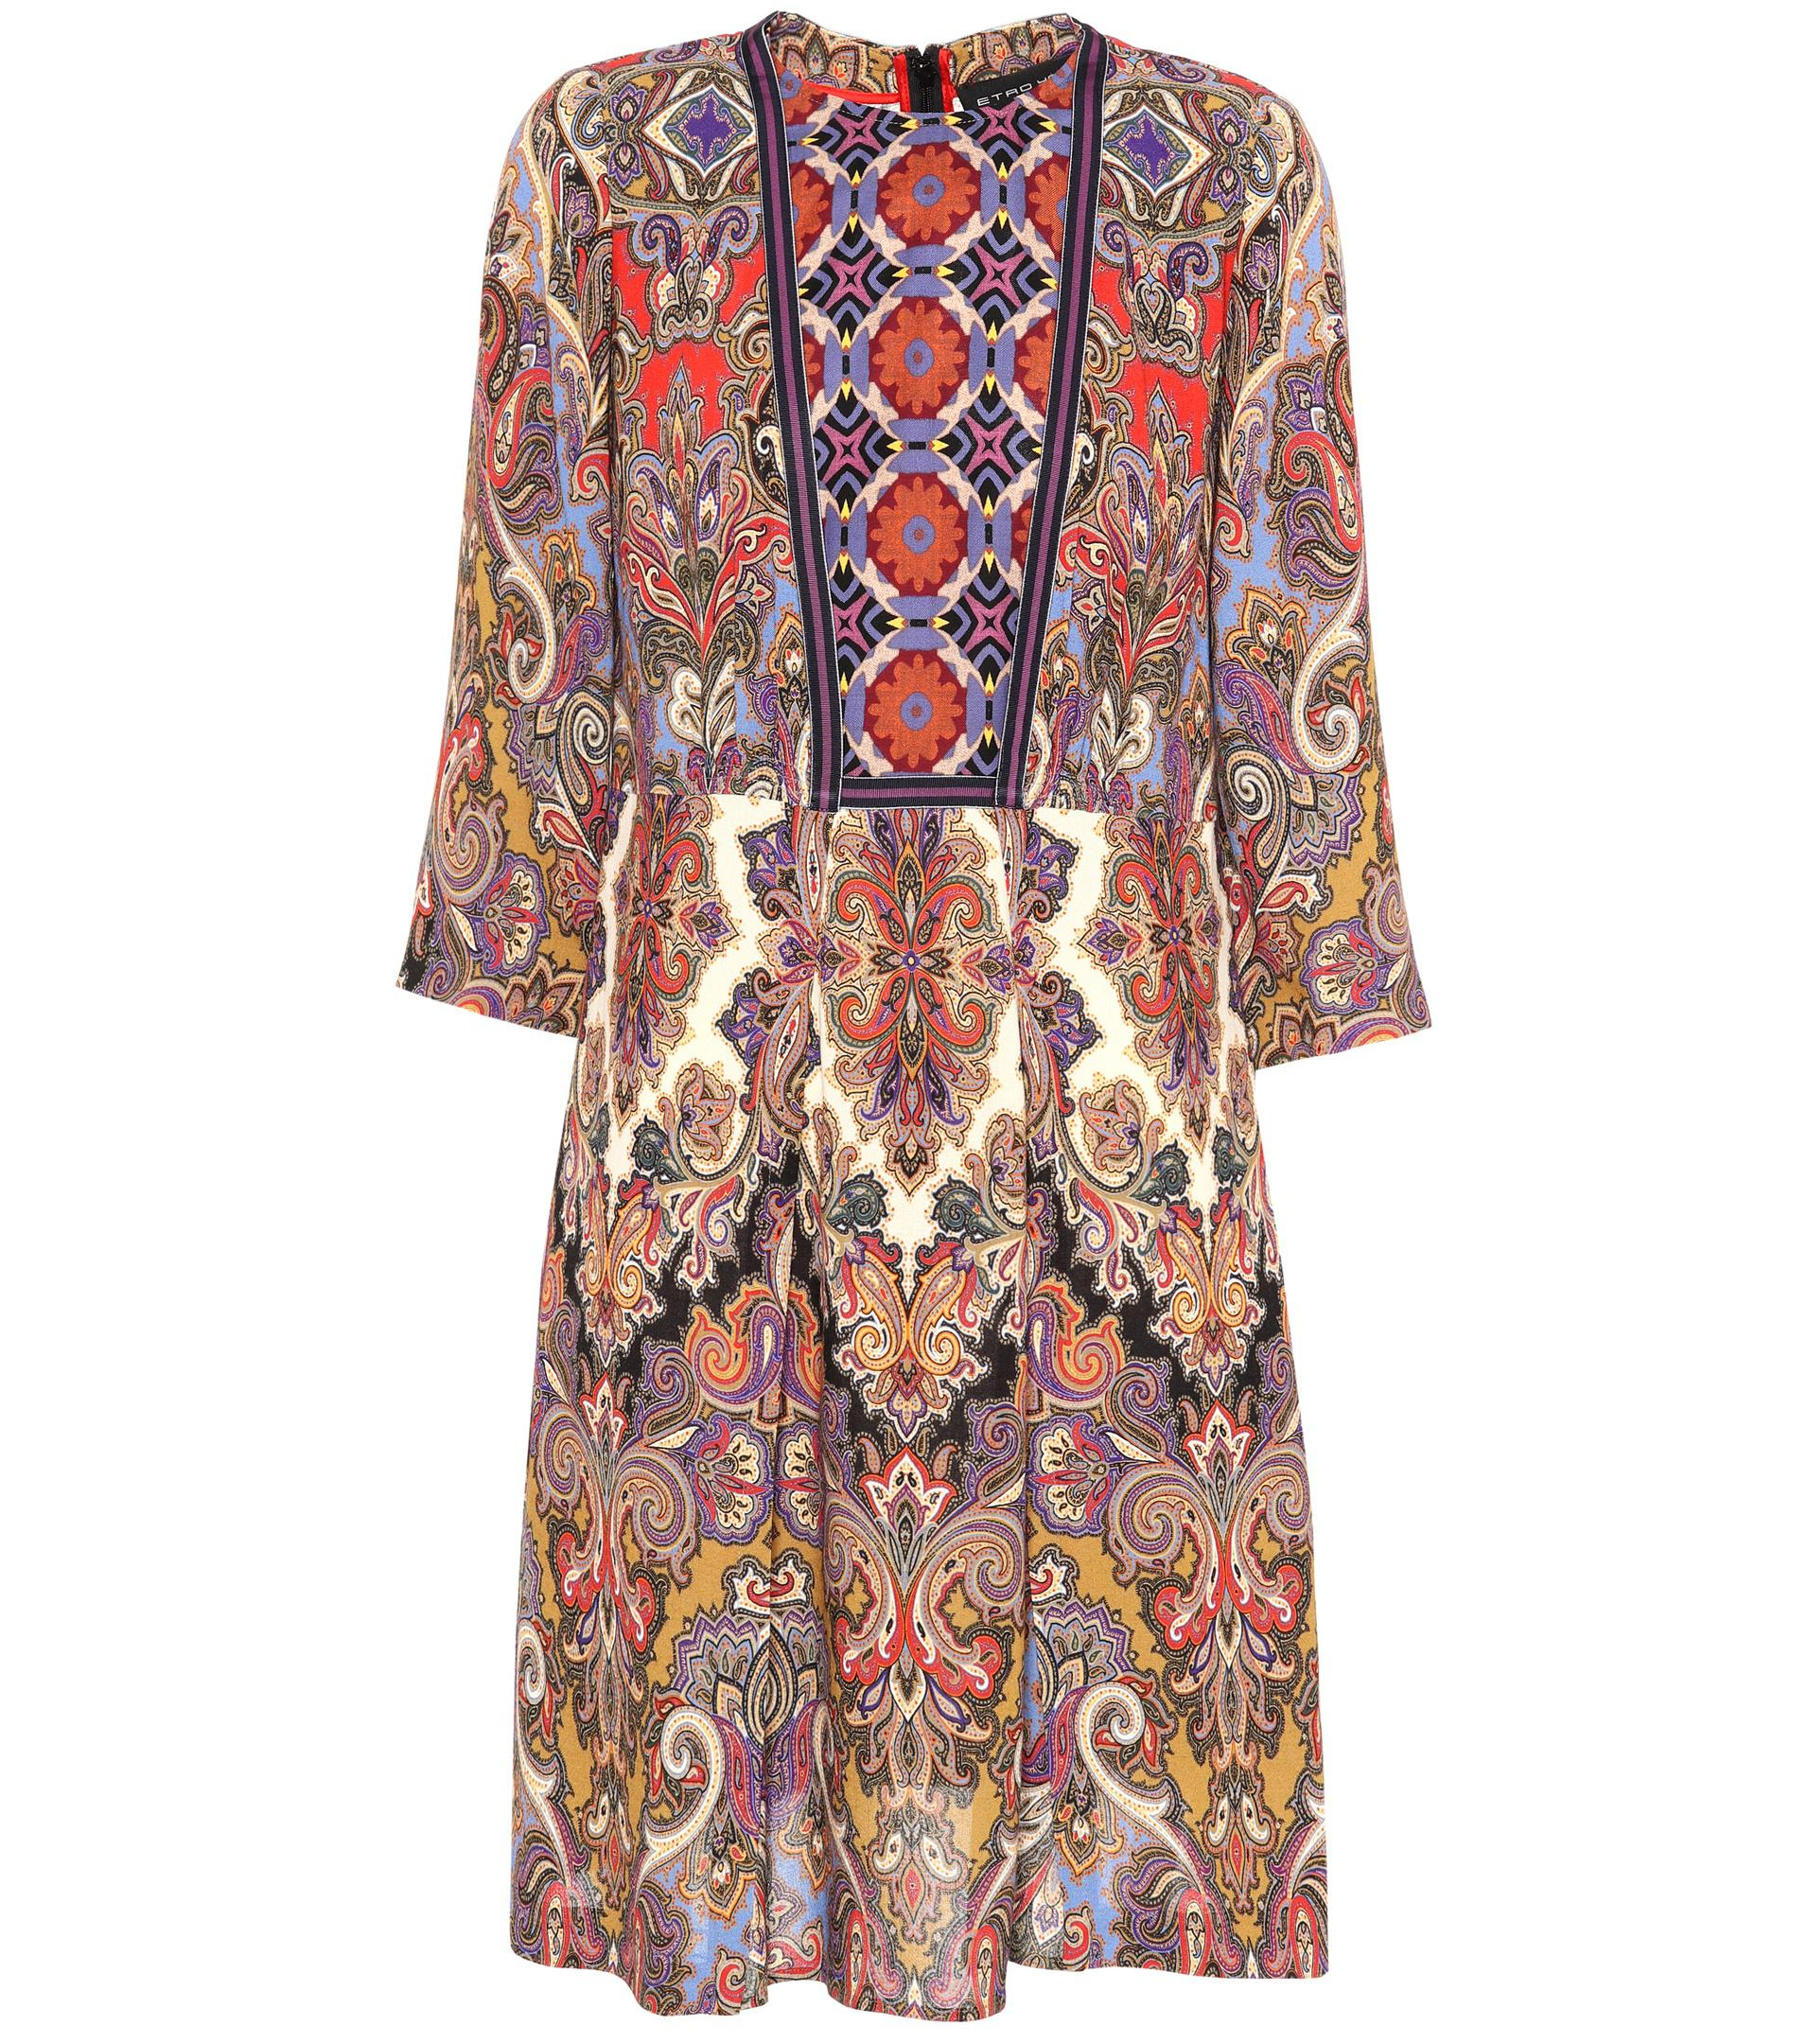 Paisley and floral-printed dress Etro pJZRBol5